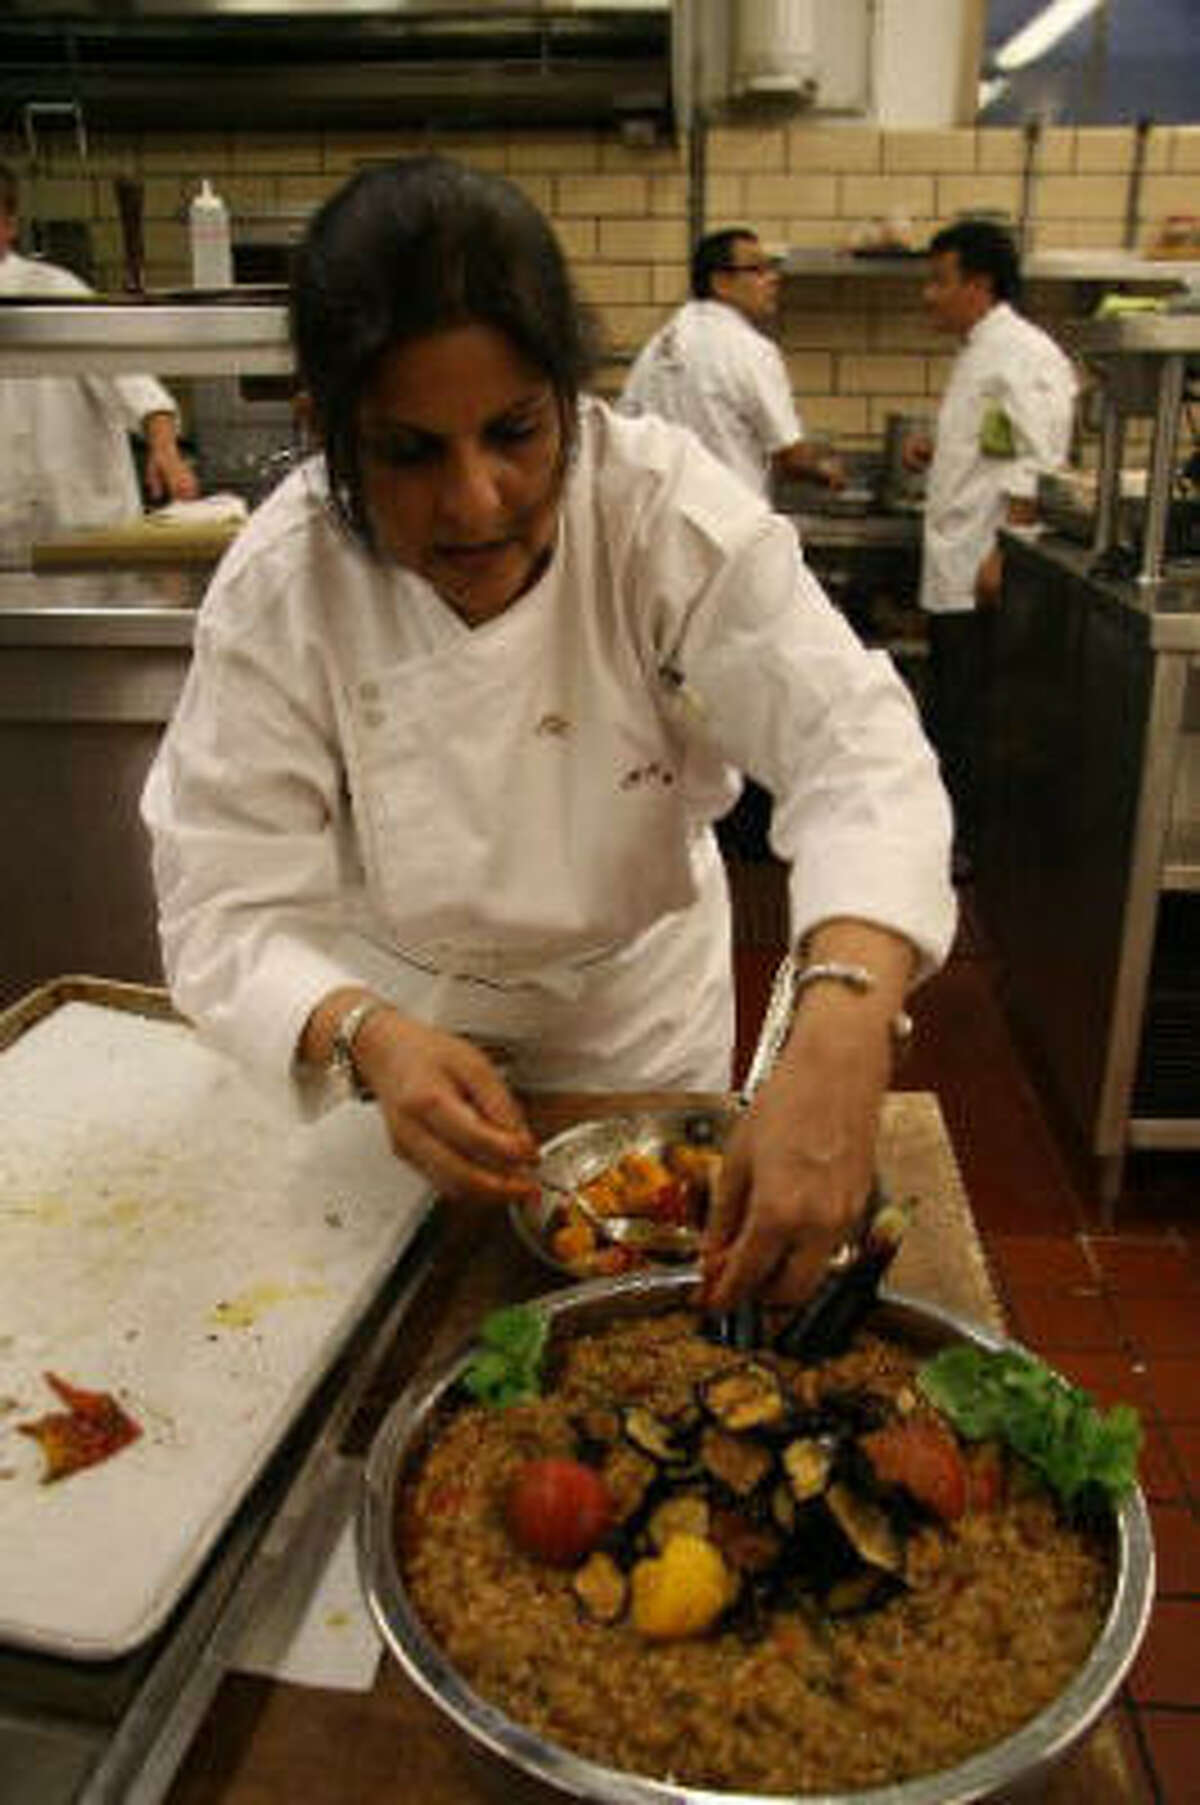 Kiran's chef-owner Kiran Verma puts the finishing touches on her eggplant appetizer before serving it at the event.